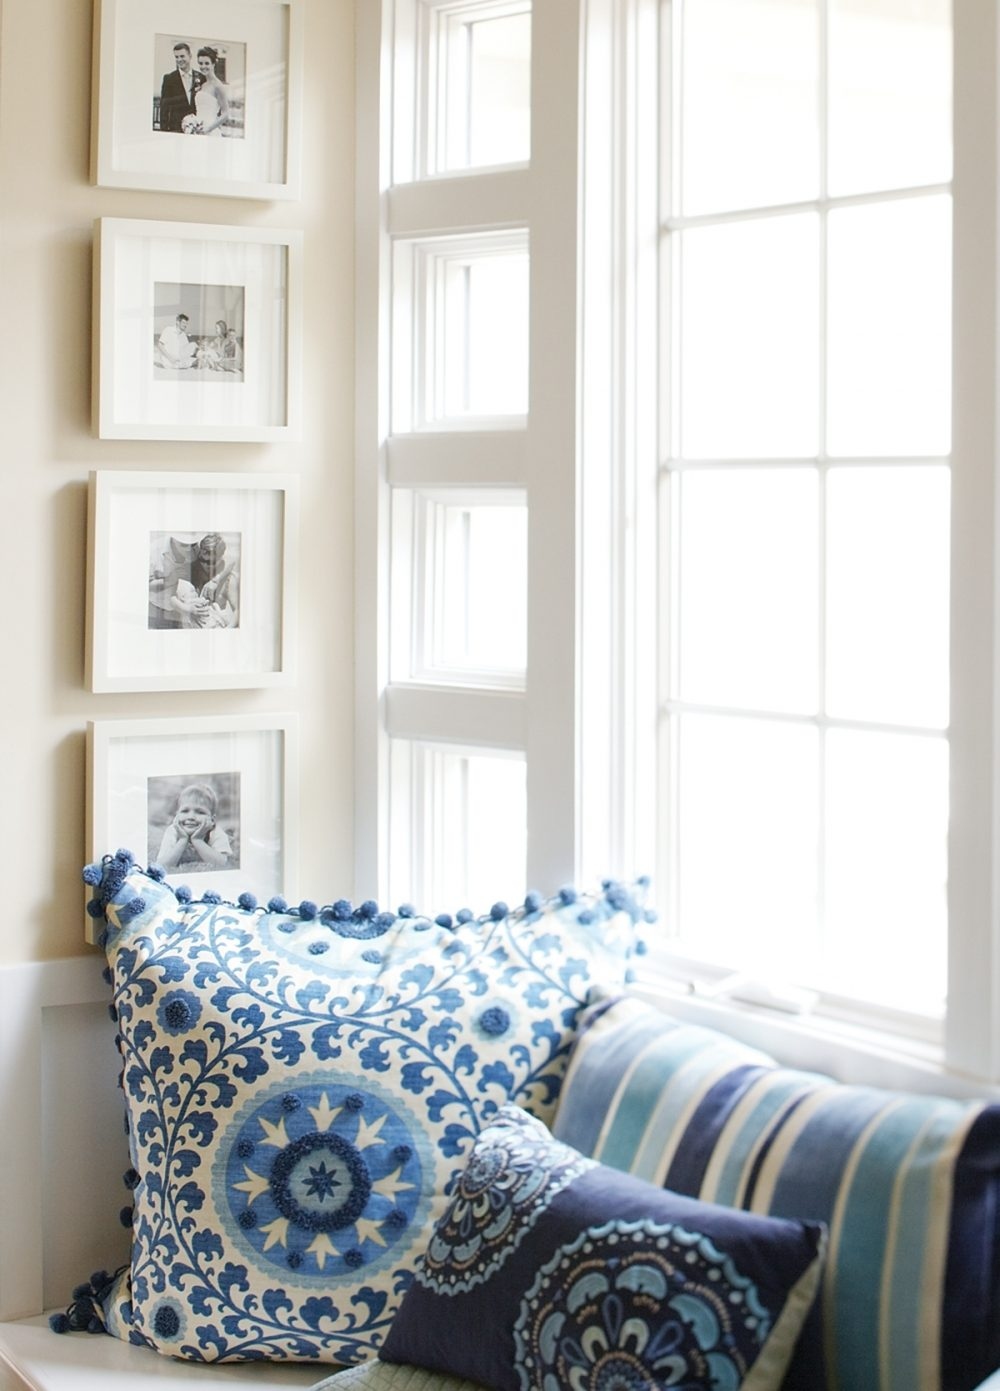 A gallery wall is downsized to fit a window seat alcove.